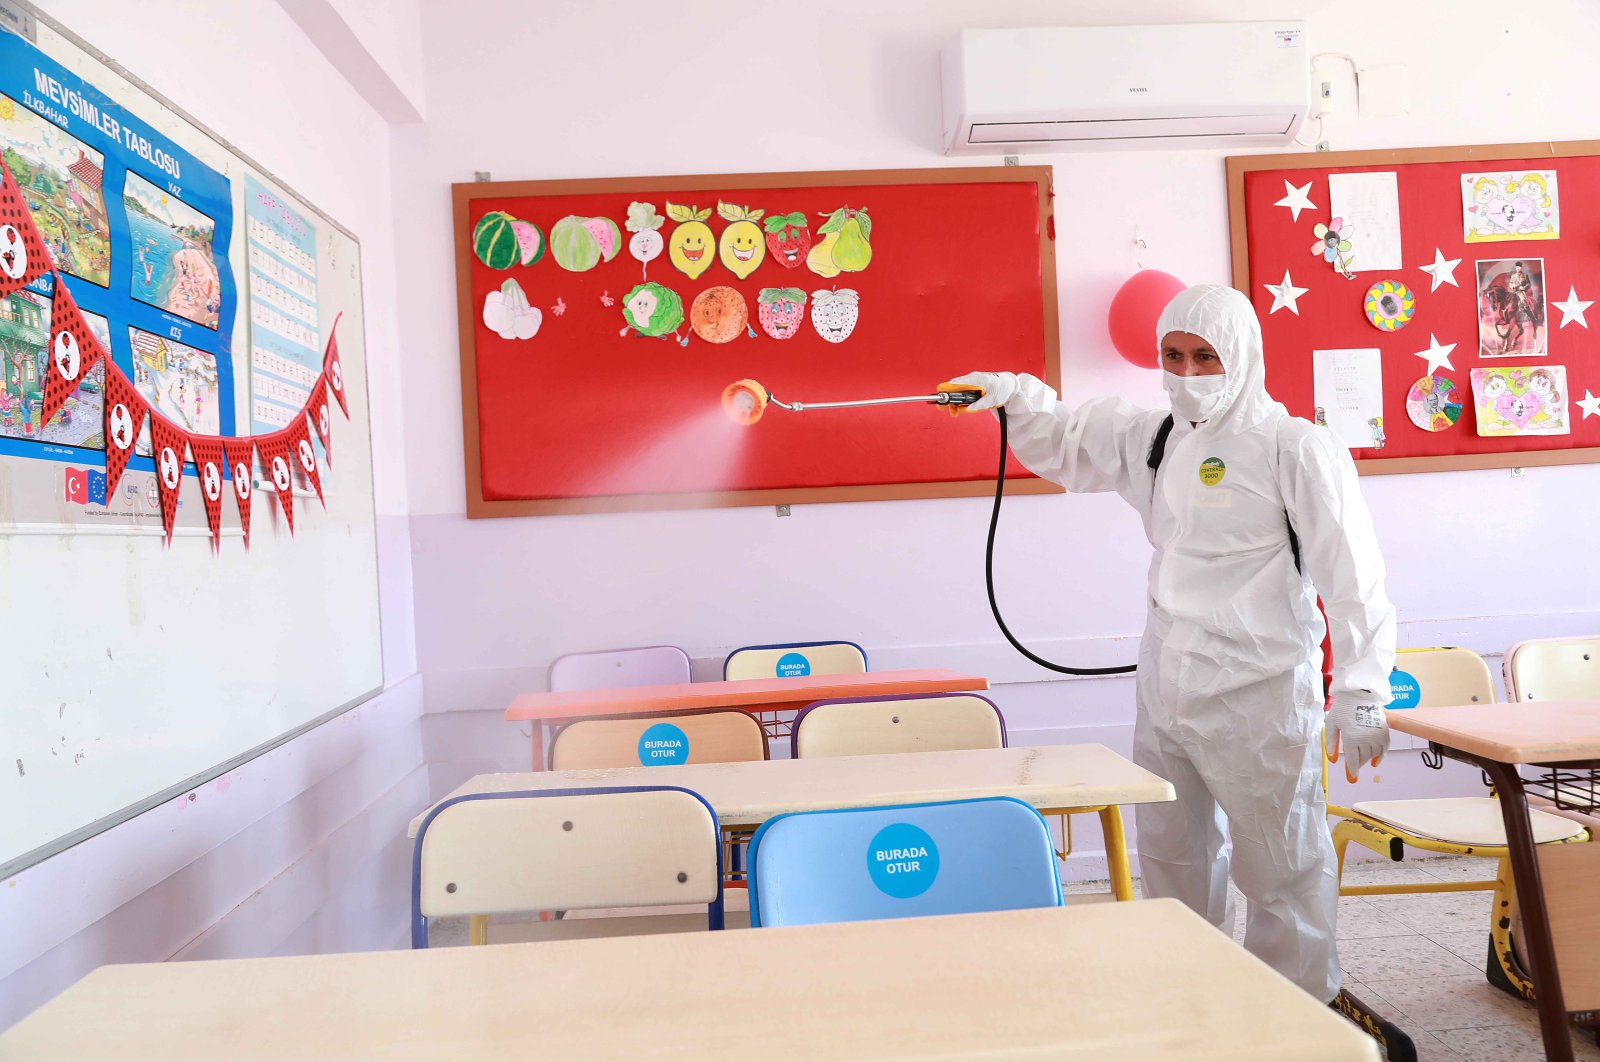 A worker disinfects a classroom at a school in the Bayraklı district, in İzmır, Turkey, Sept. 20, 2020. (IHA Photo)